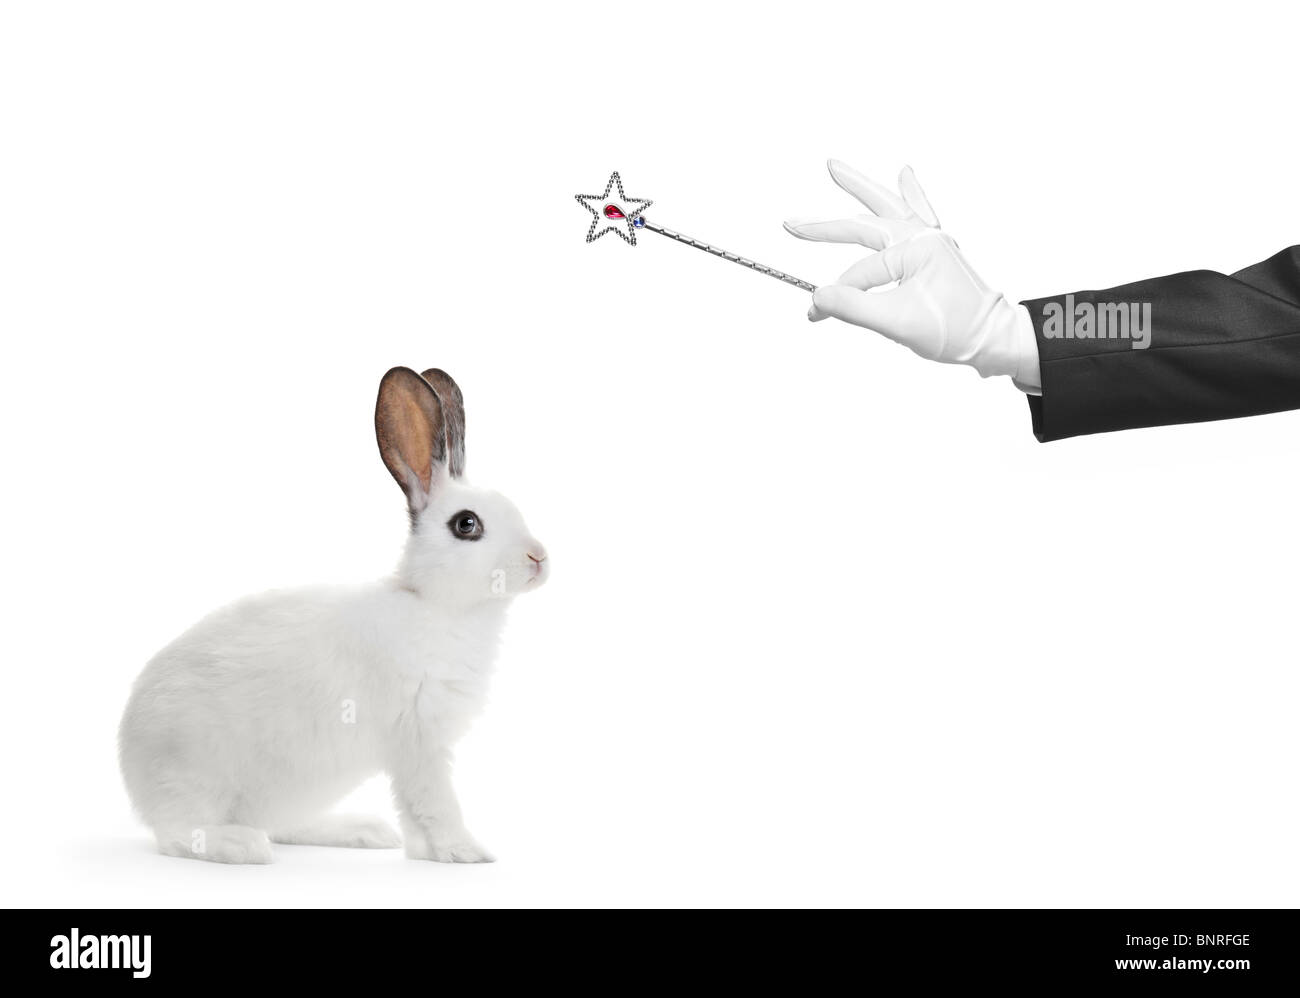 A rabbit and hand holding a magic wand - Stock Image